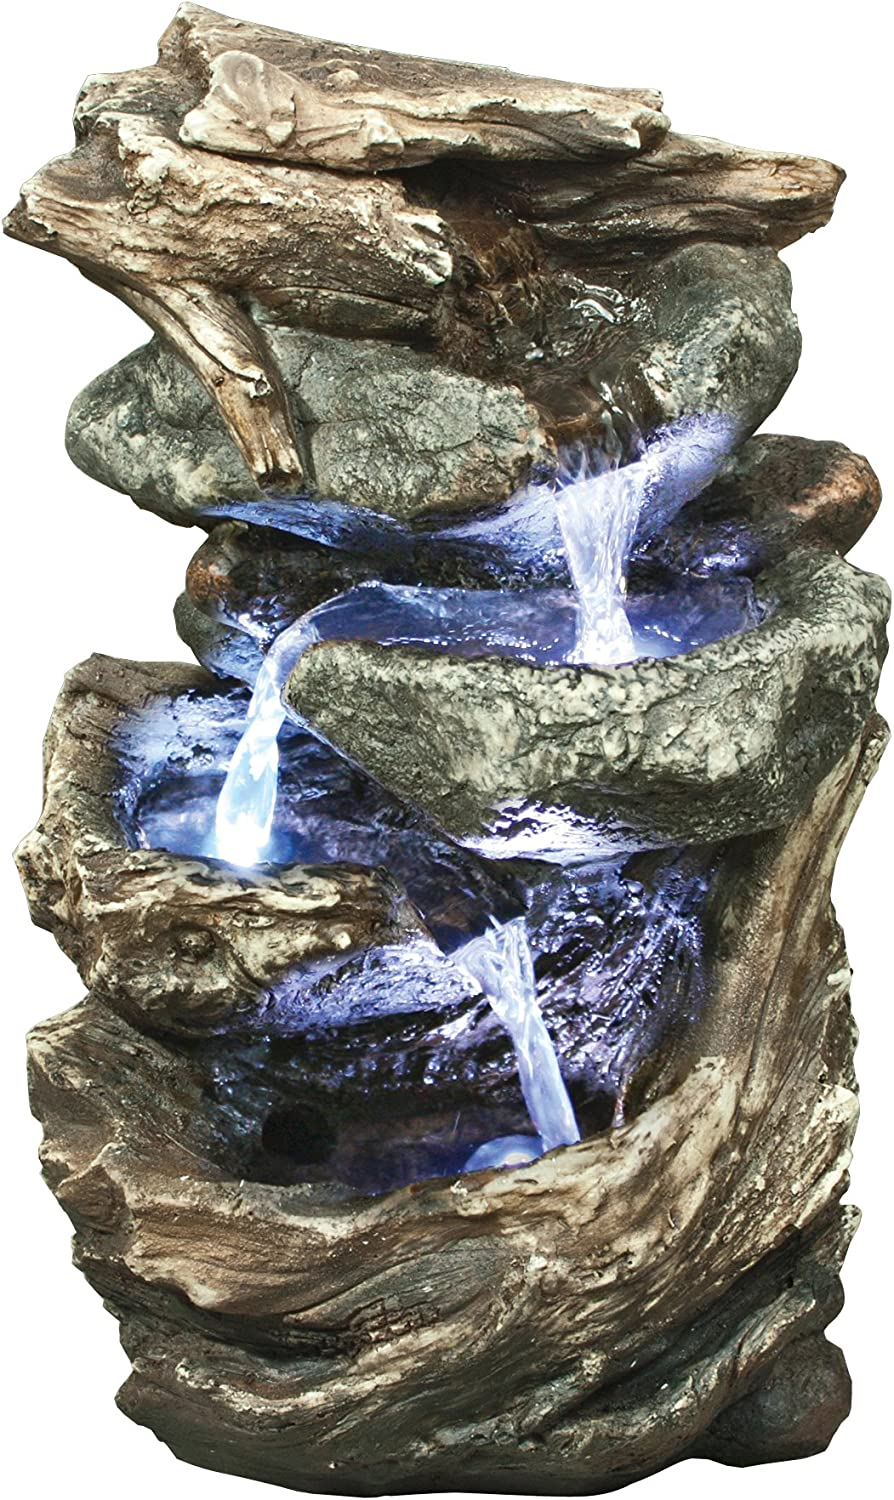 LED Lights Included Realistic Hand Crafted Design Pump Included. Easy to Set Up Calming Waterfall Feature Great for Gardens and Patios Alexander Log Fountain